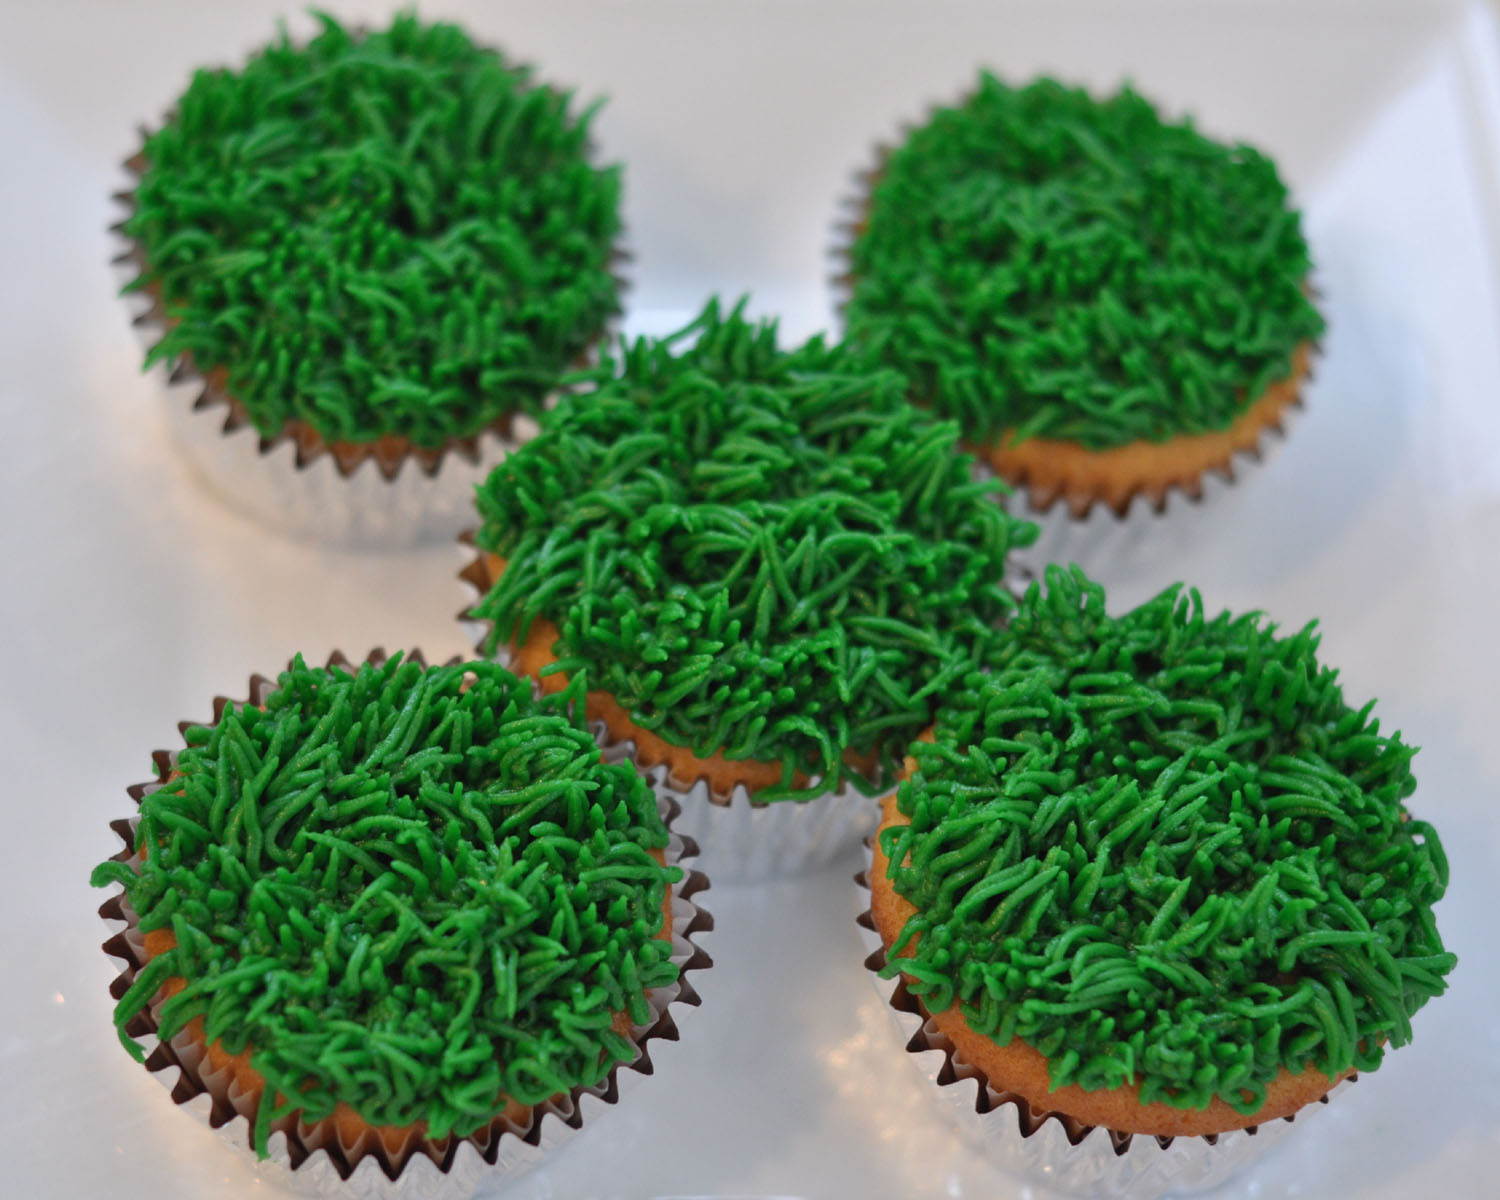 What Cake Decorating Tip Make The Icing Look Like Grass